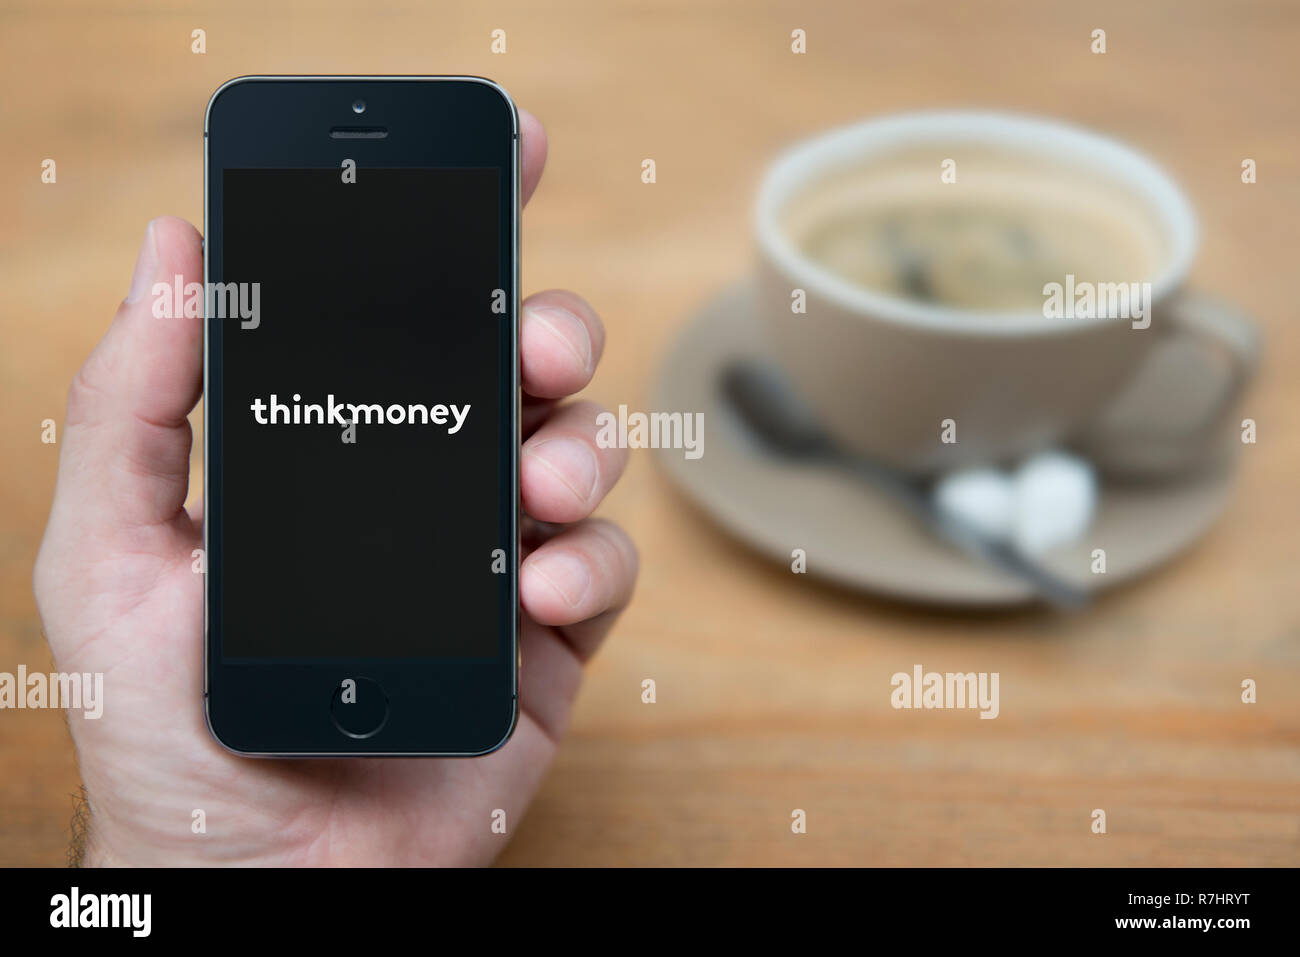 A man looks at his iPhone which displays the ThinkMoney logo (Editorial use only). Stock Photo